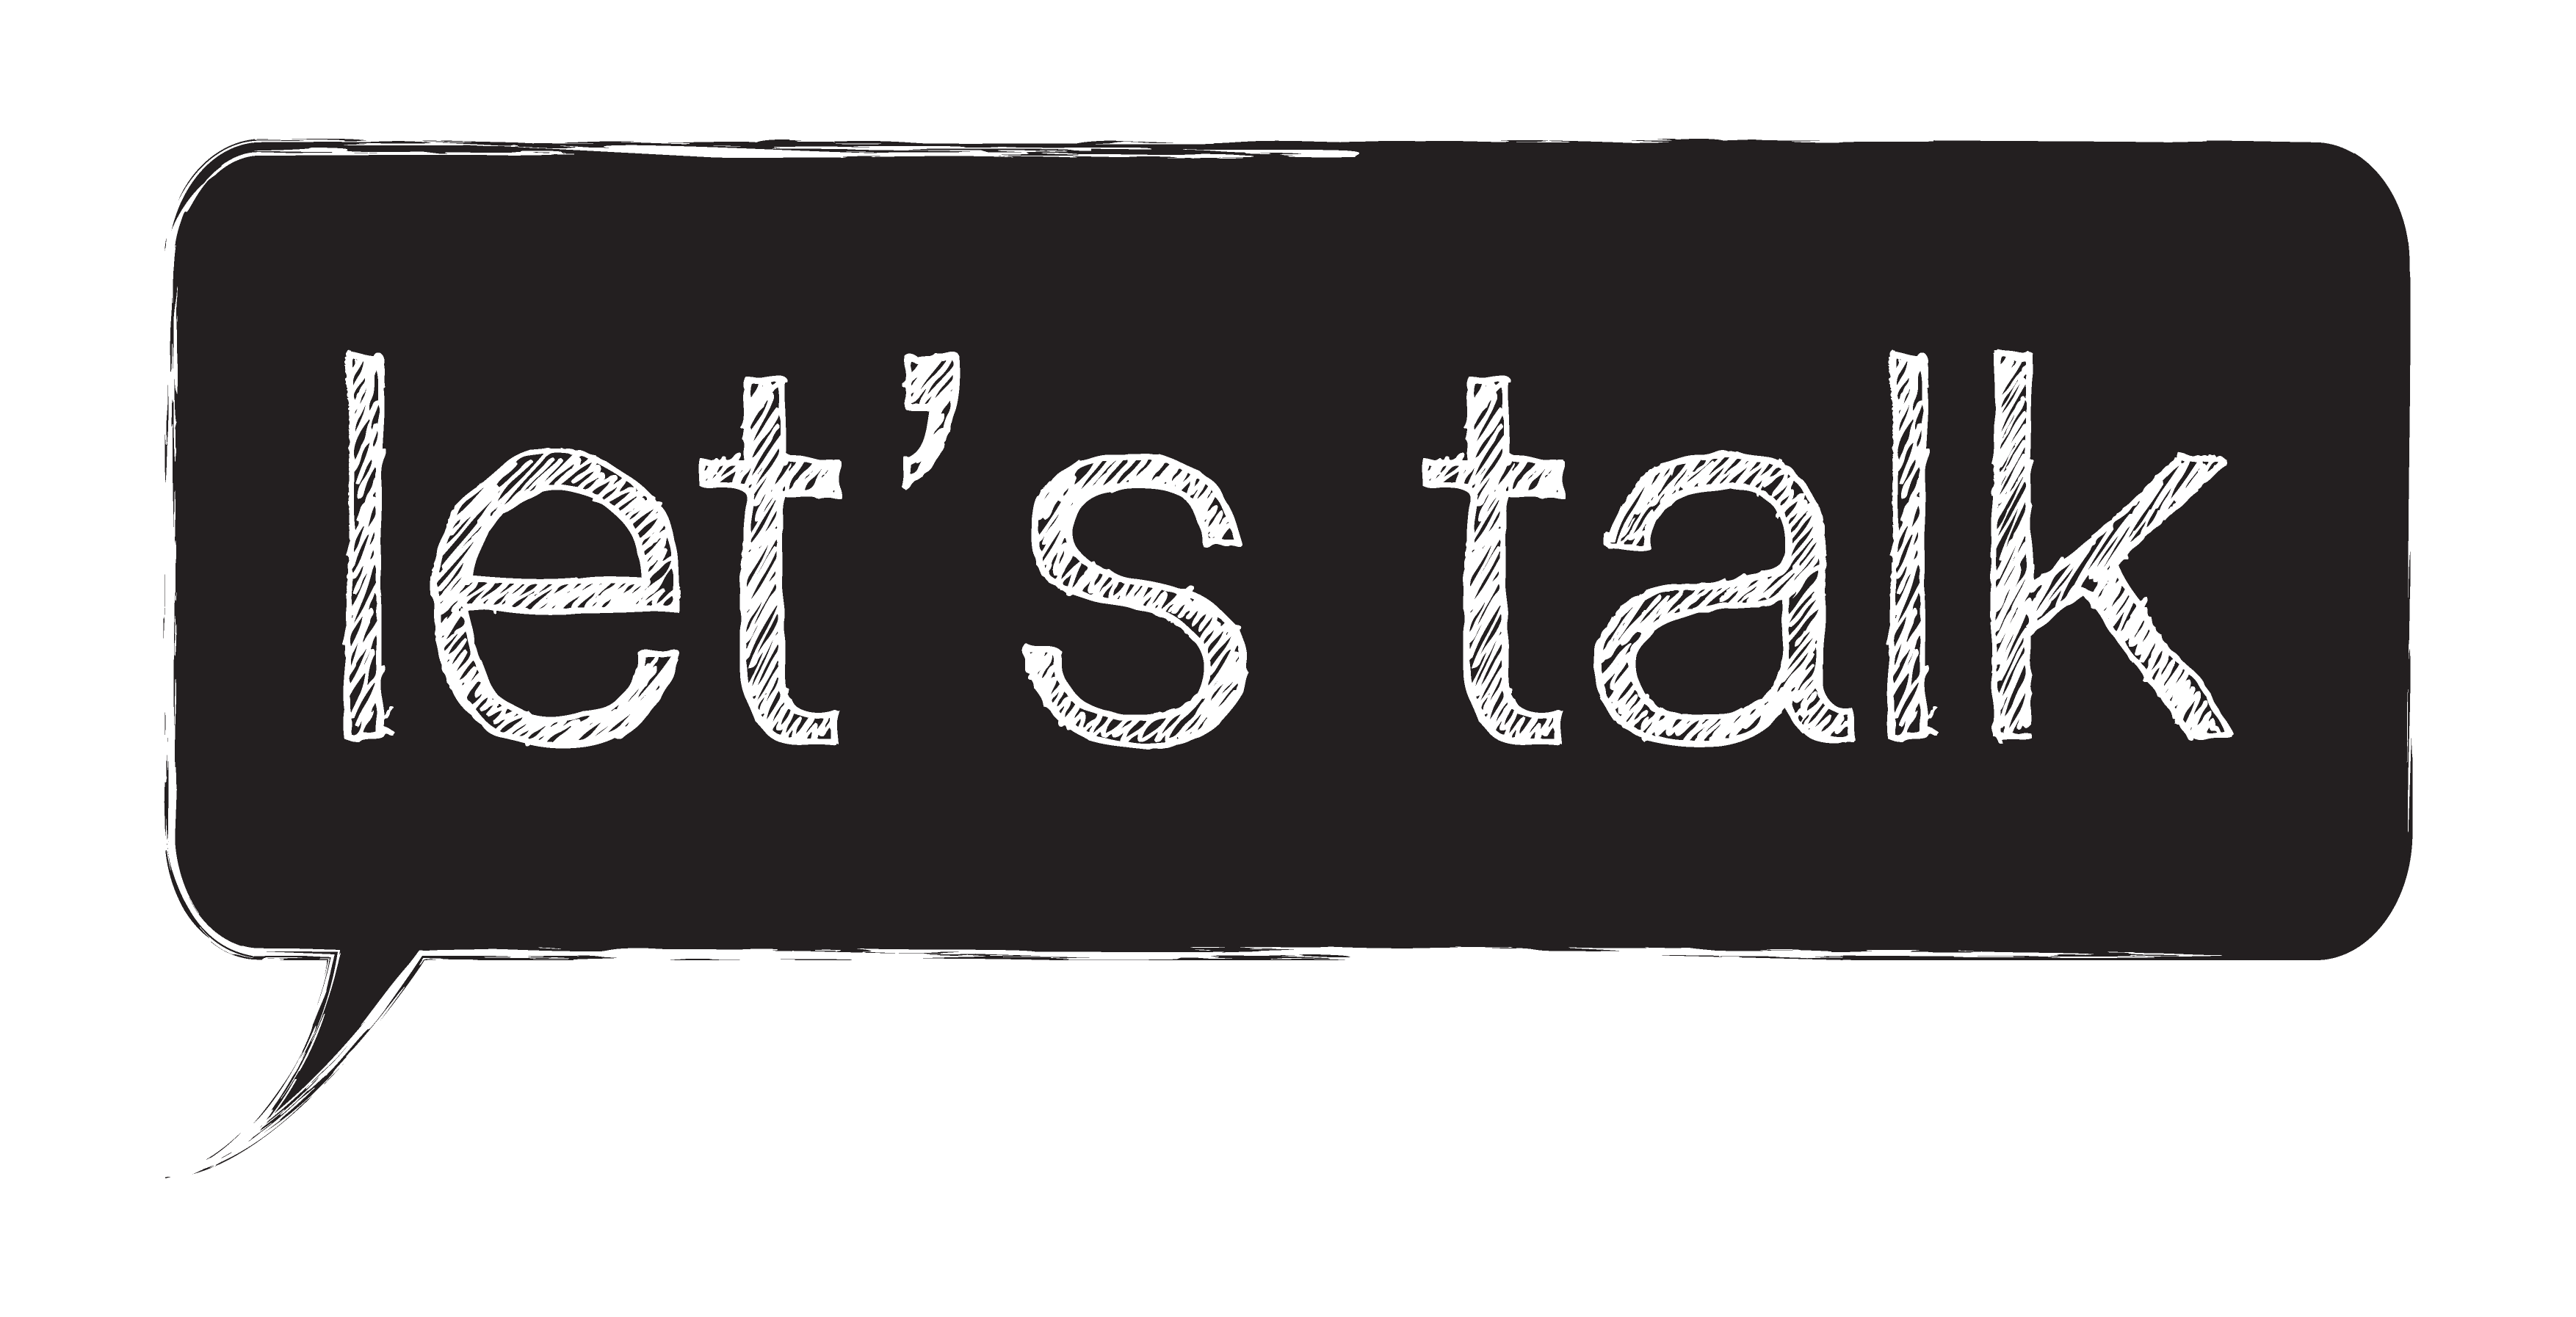 Image result for lets talk transparent